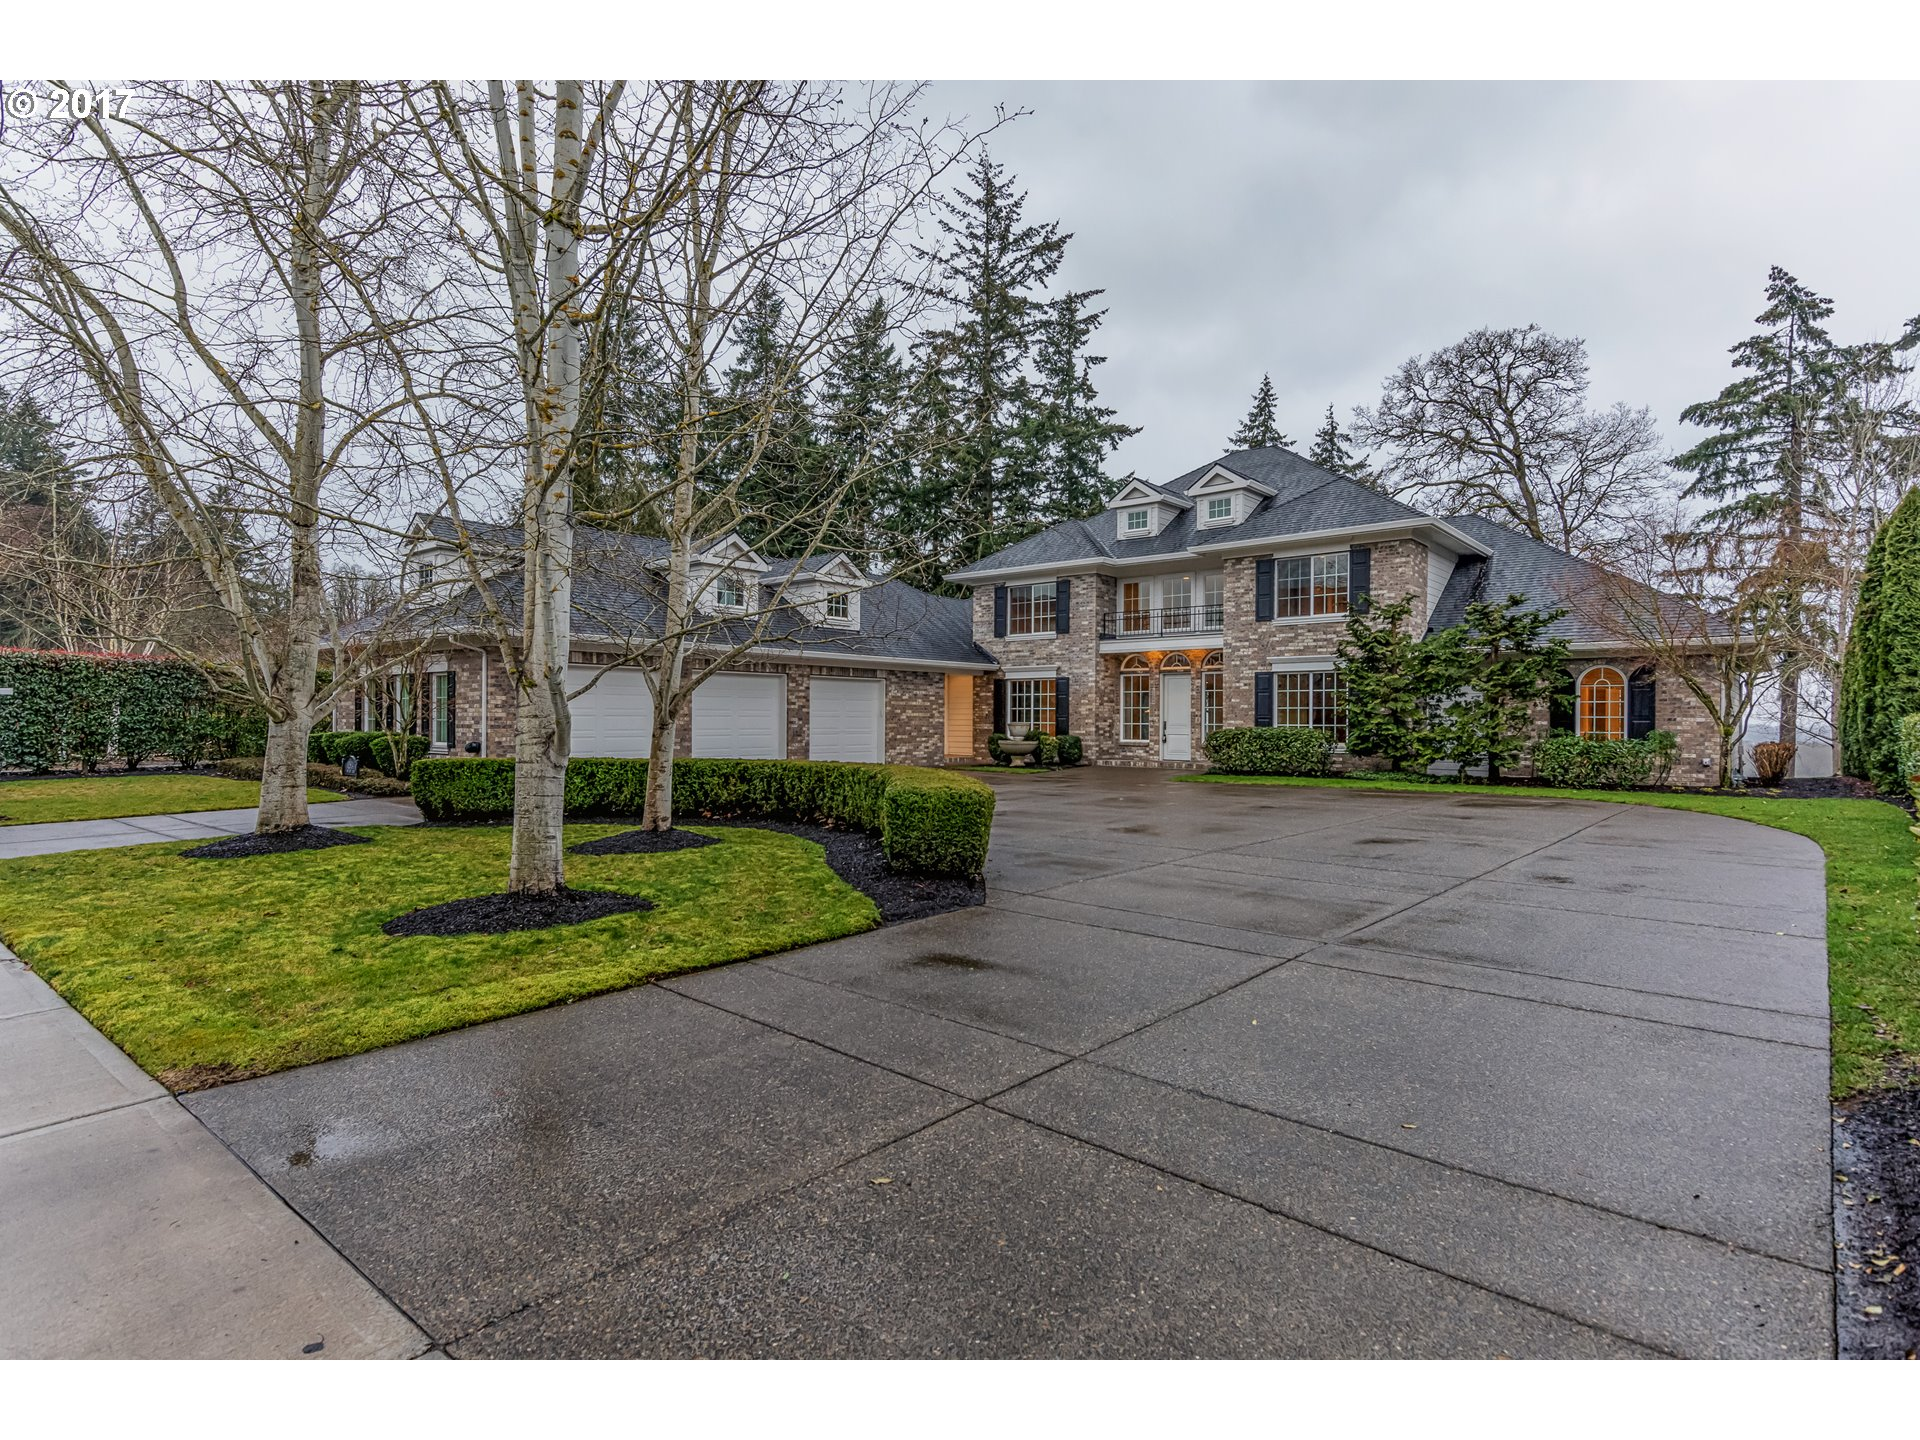 11504 NW 43RD CT, Vancouver, WA 98685